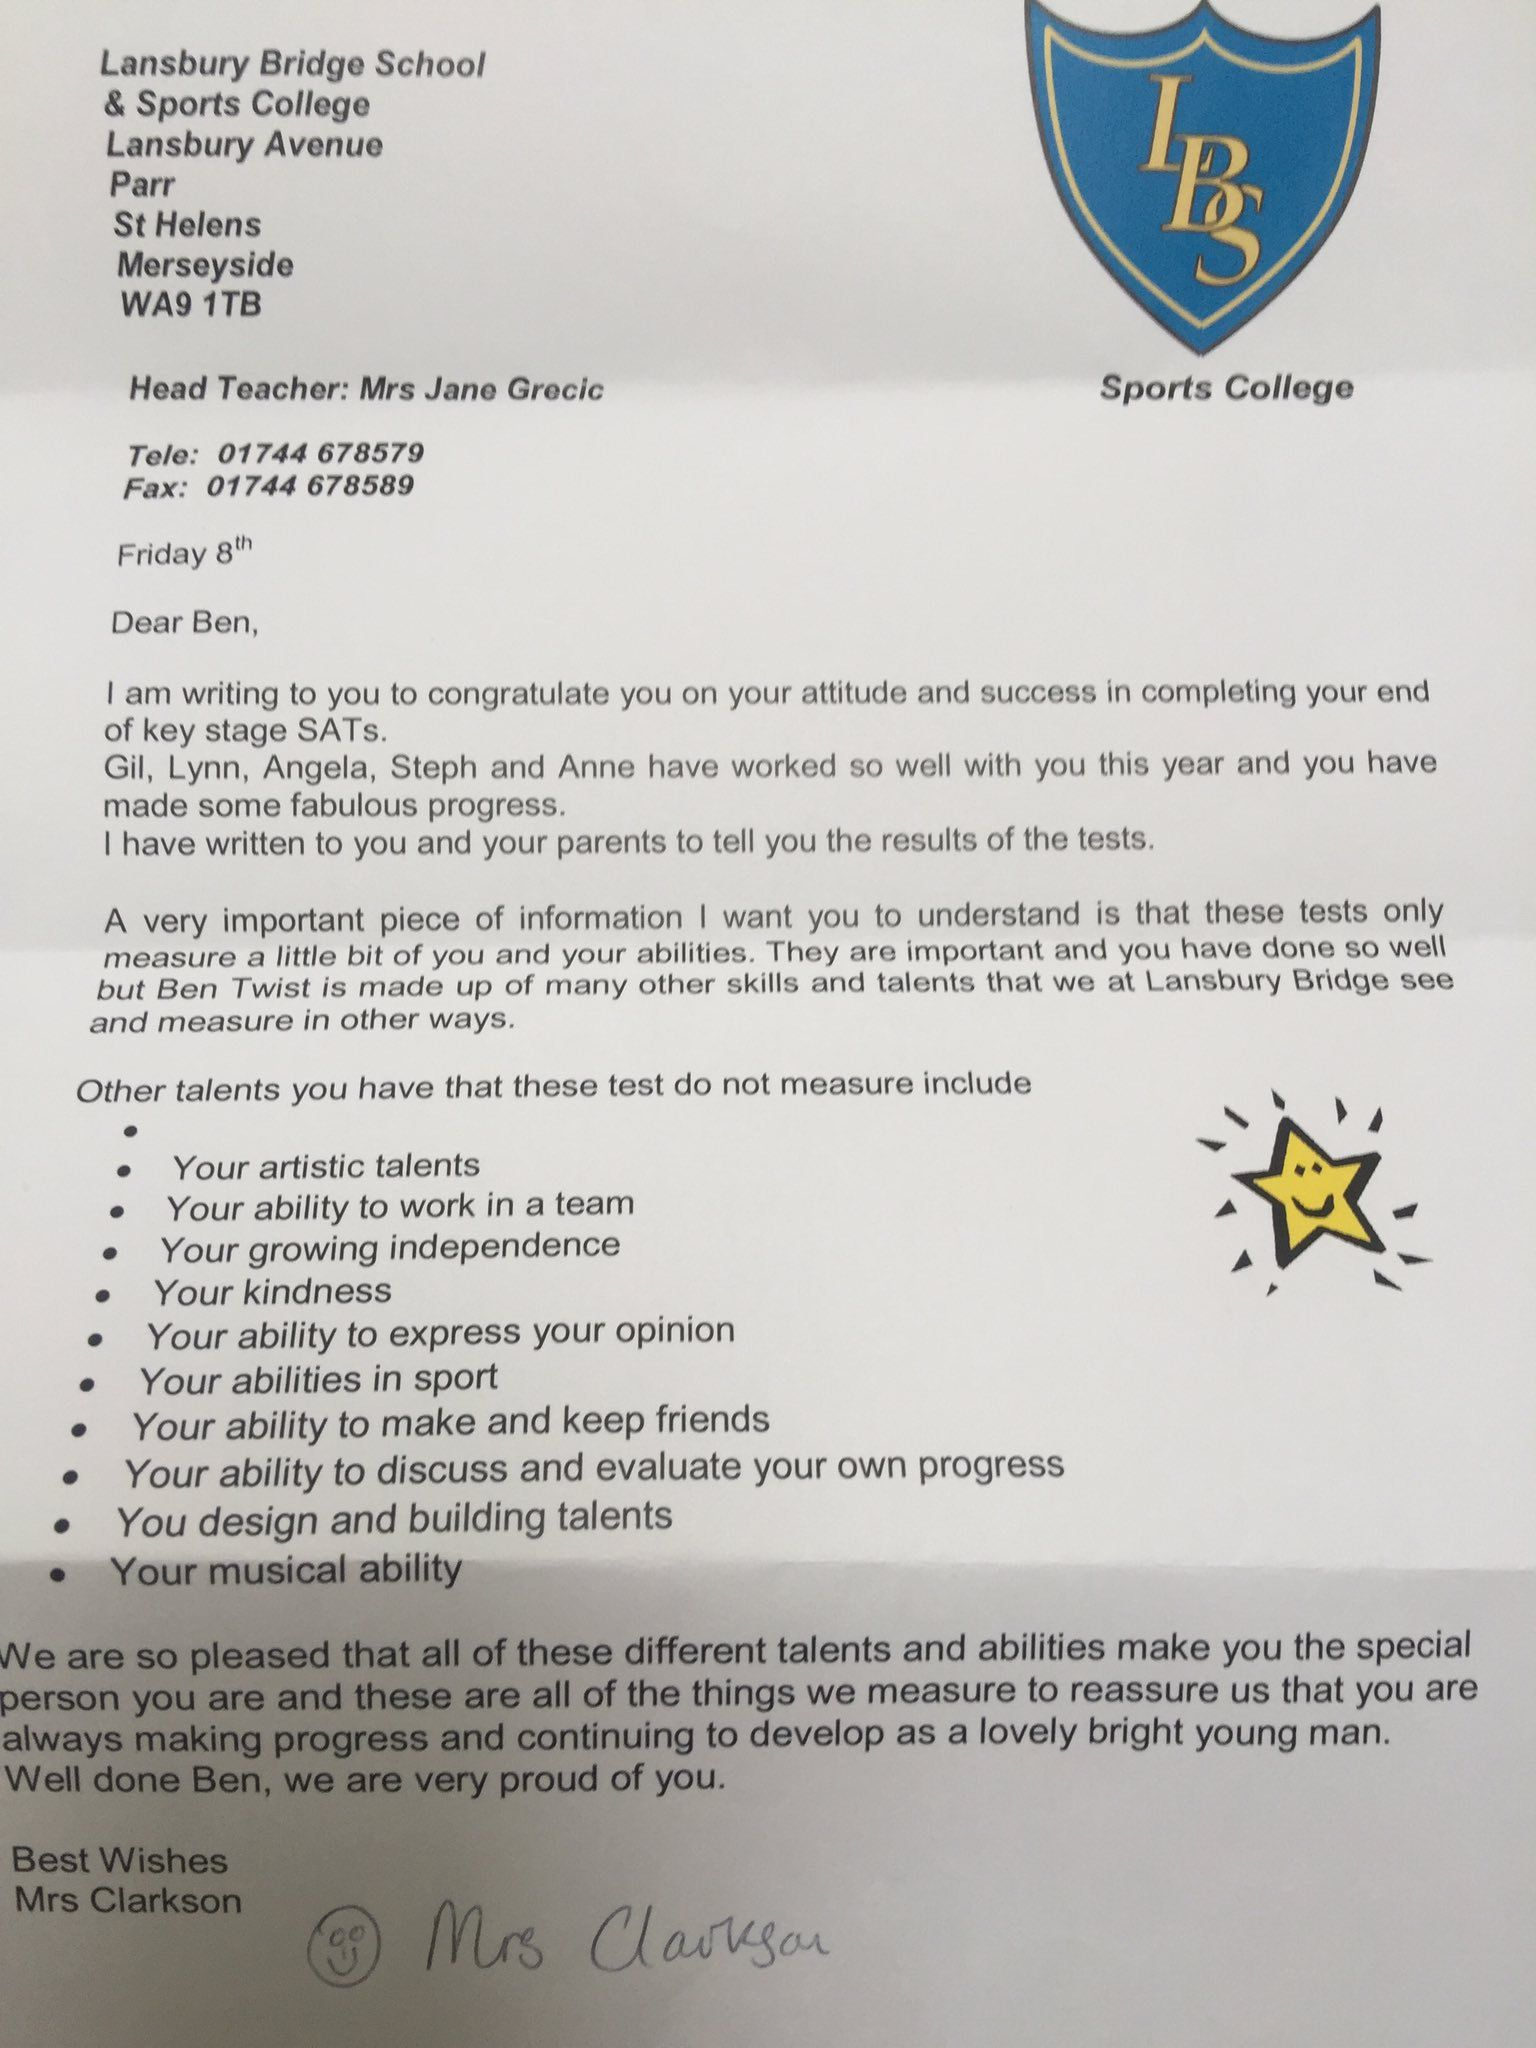 A Boy With Autism Failed a Test and Got This Moving Letter From